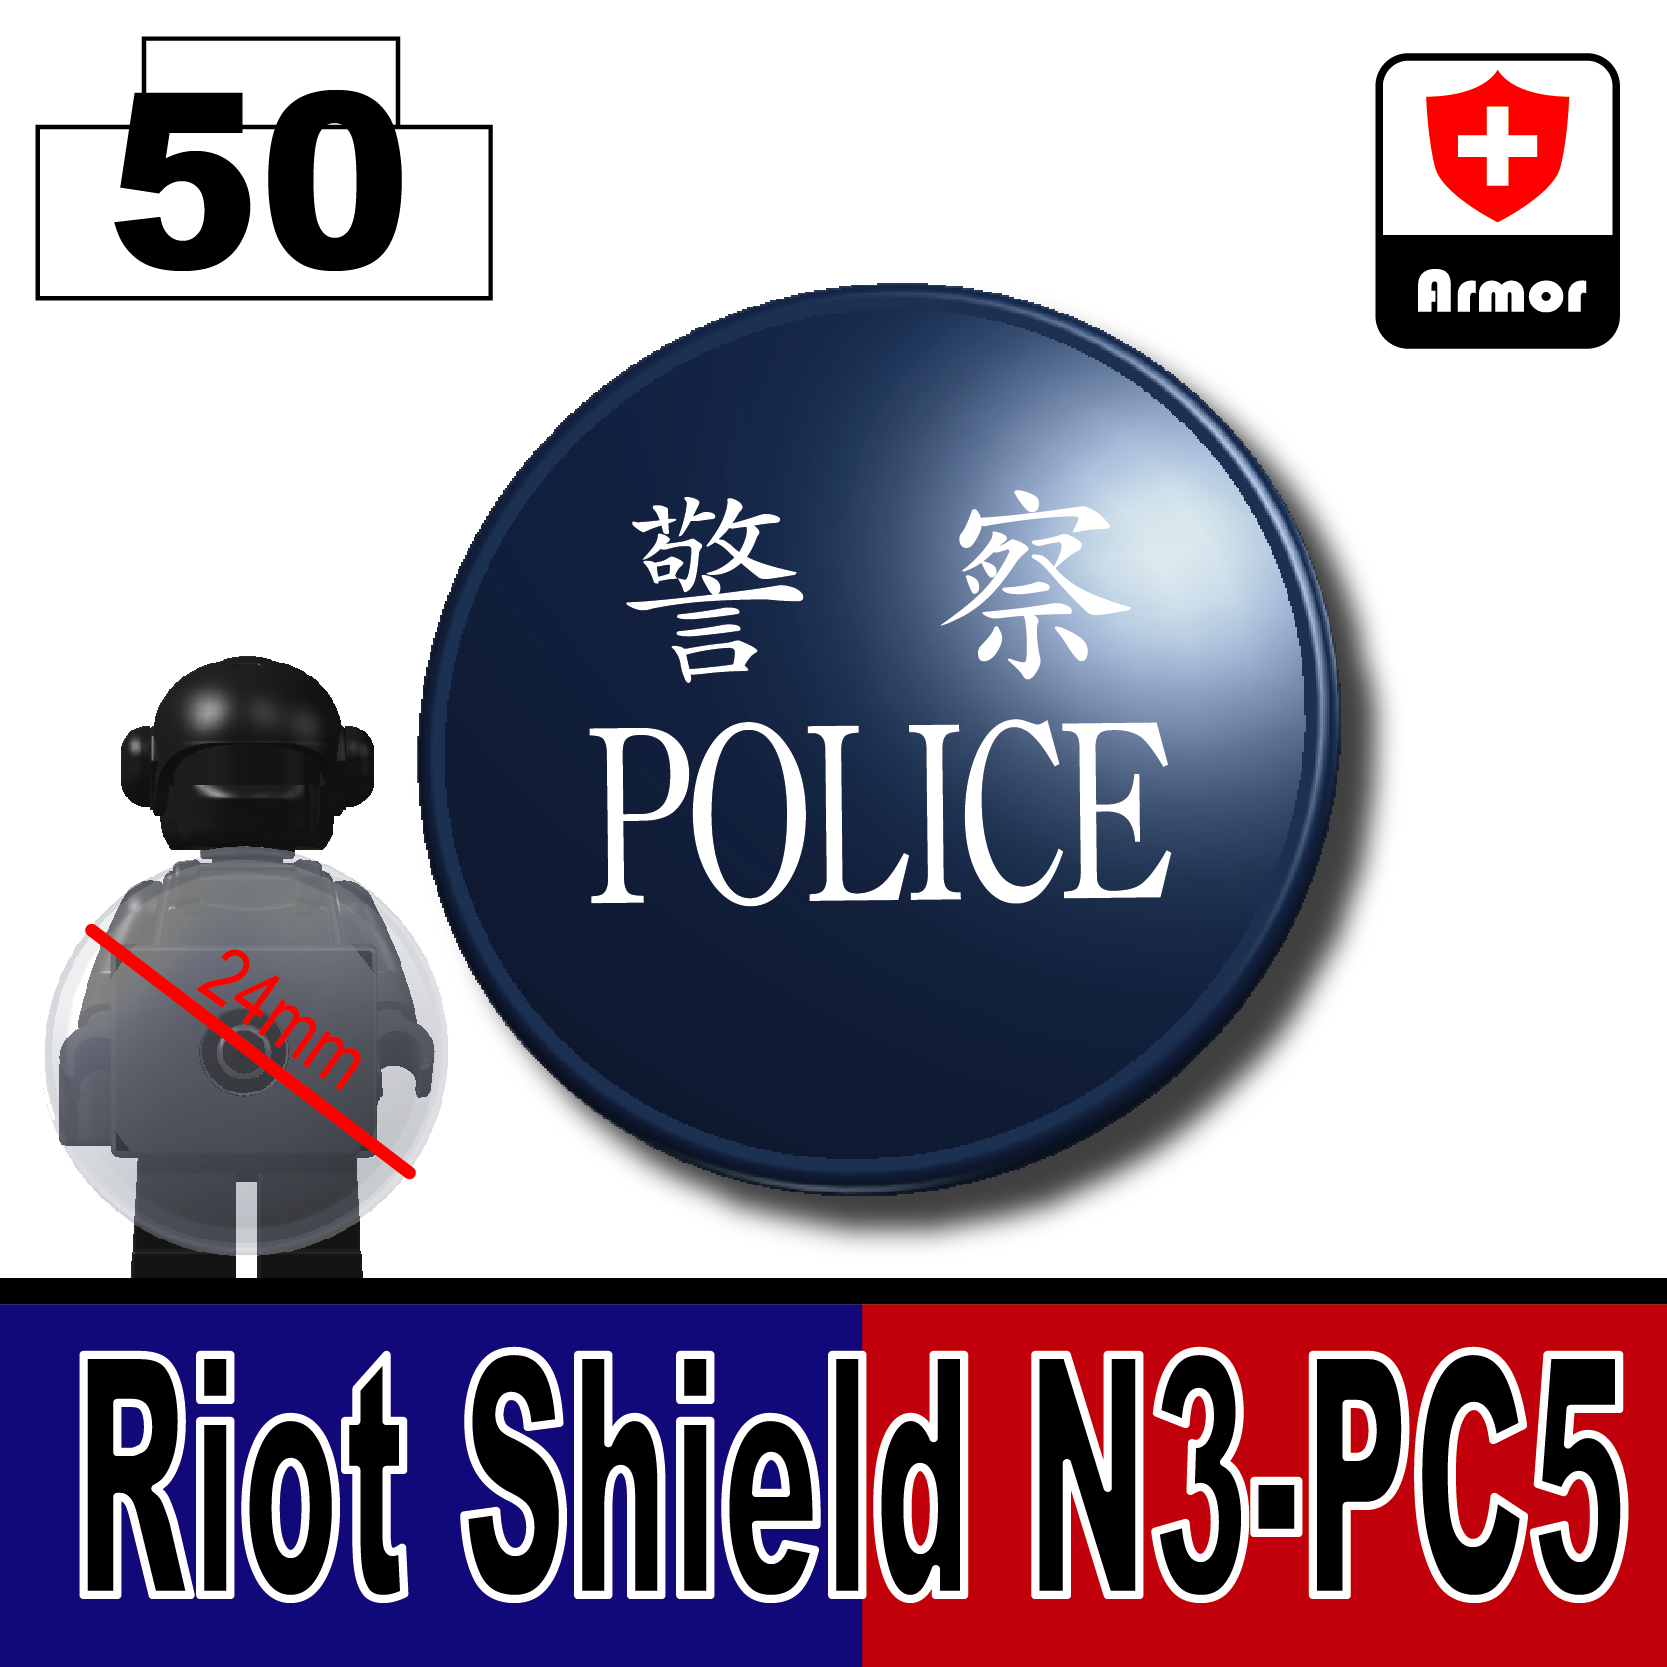 Riot Shield N3-PC5